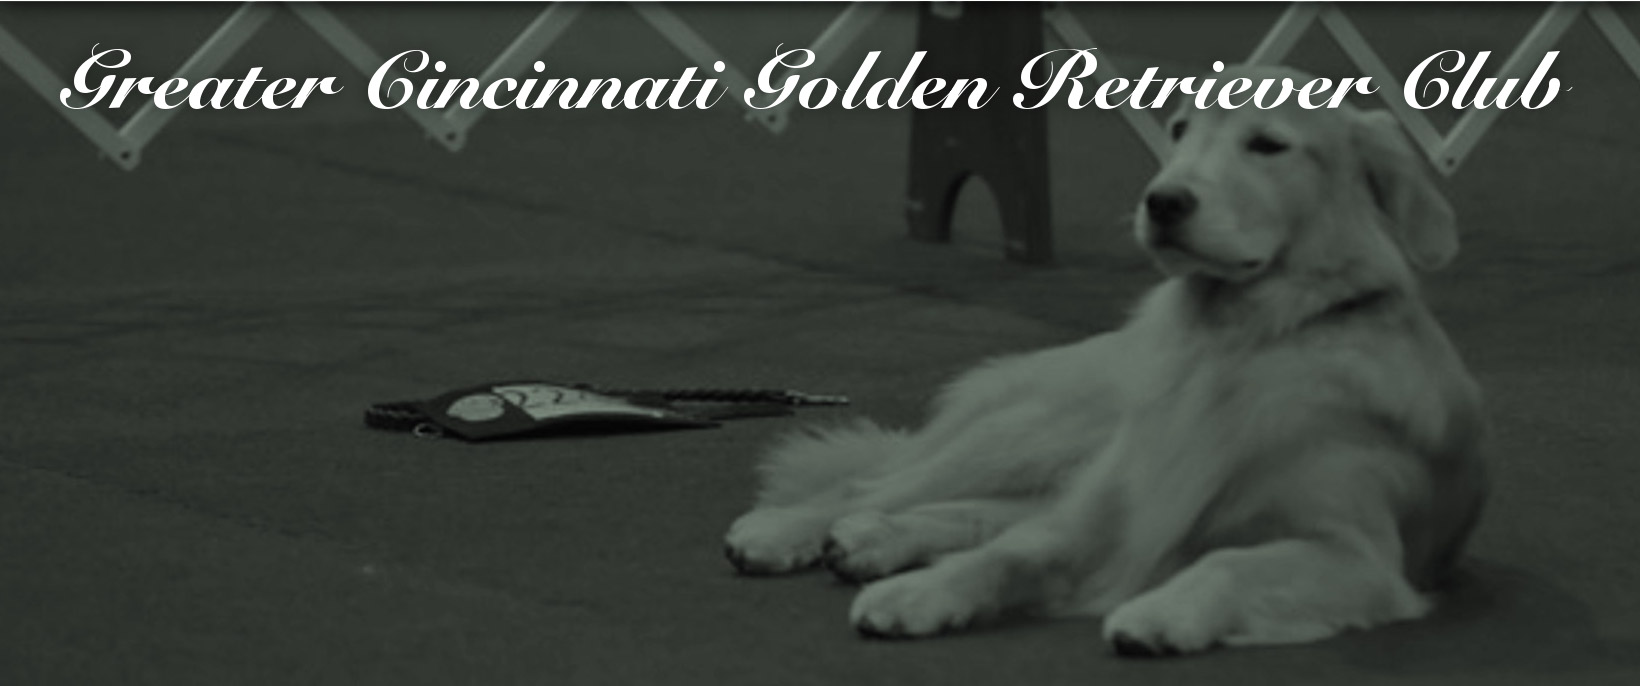 Greater Cincinnati Golden Retriever Club